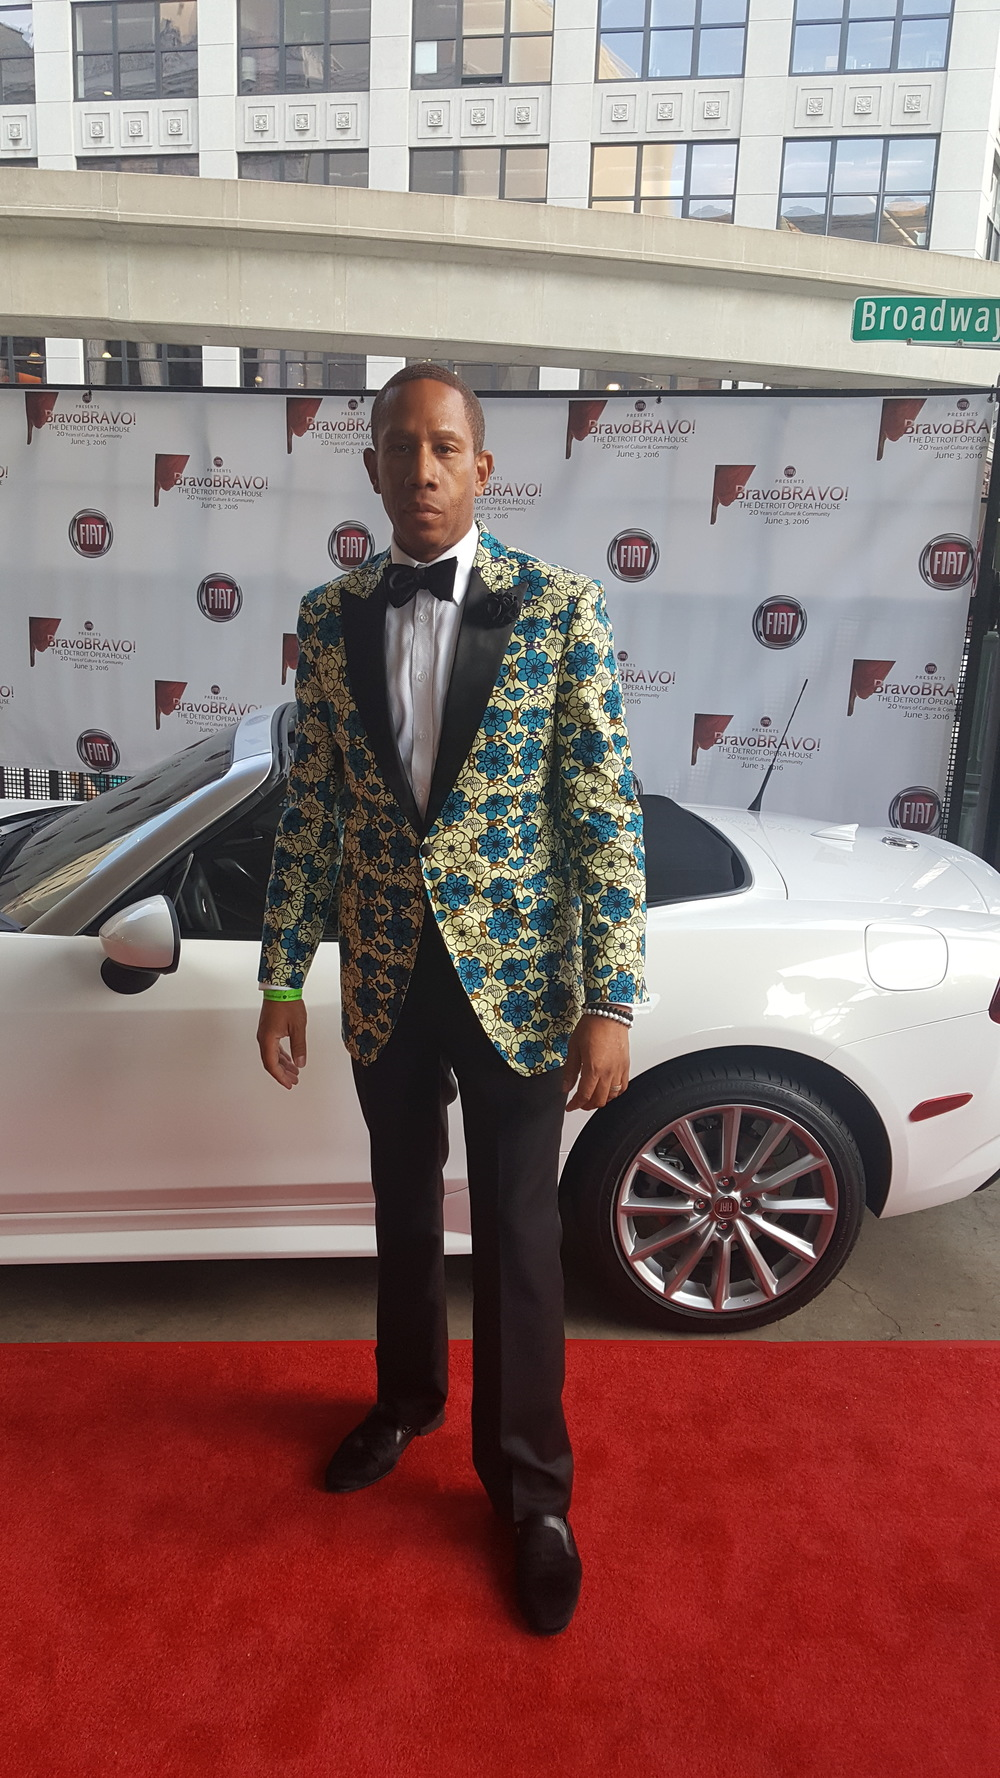 William Malcolm wearing a one of one African Wax Print Cotton Tuxedo jacket for Bravo!Bravo! Red Carpet. www.WilliamMalcolmCollection.com